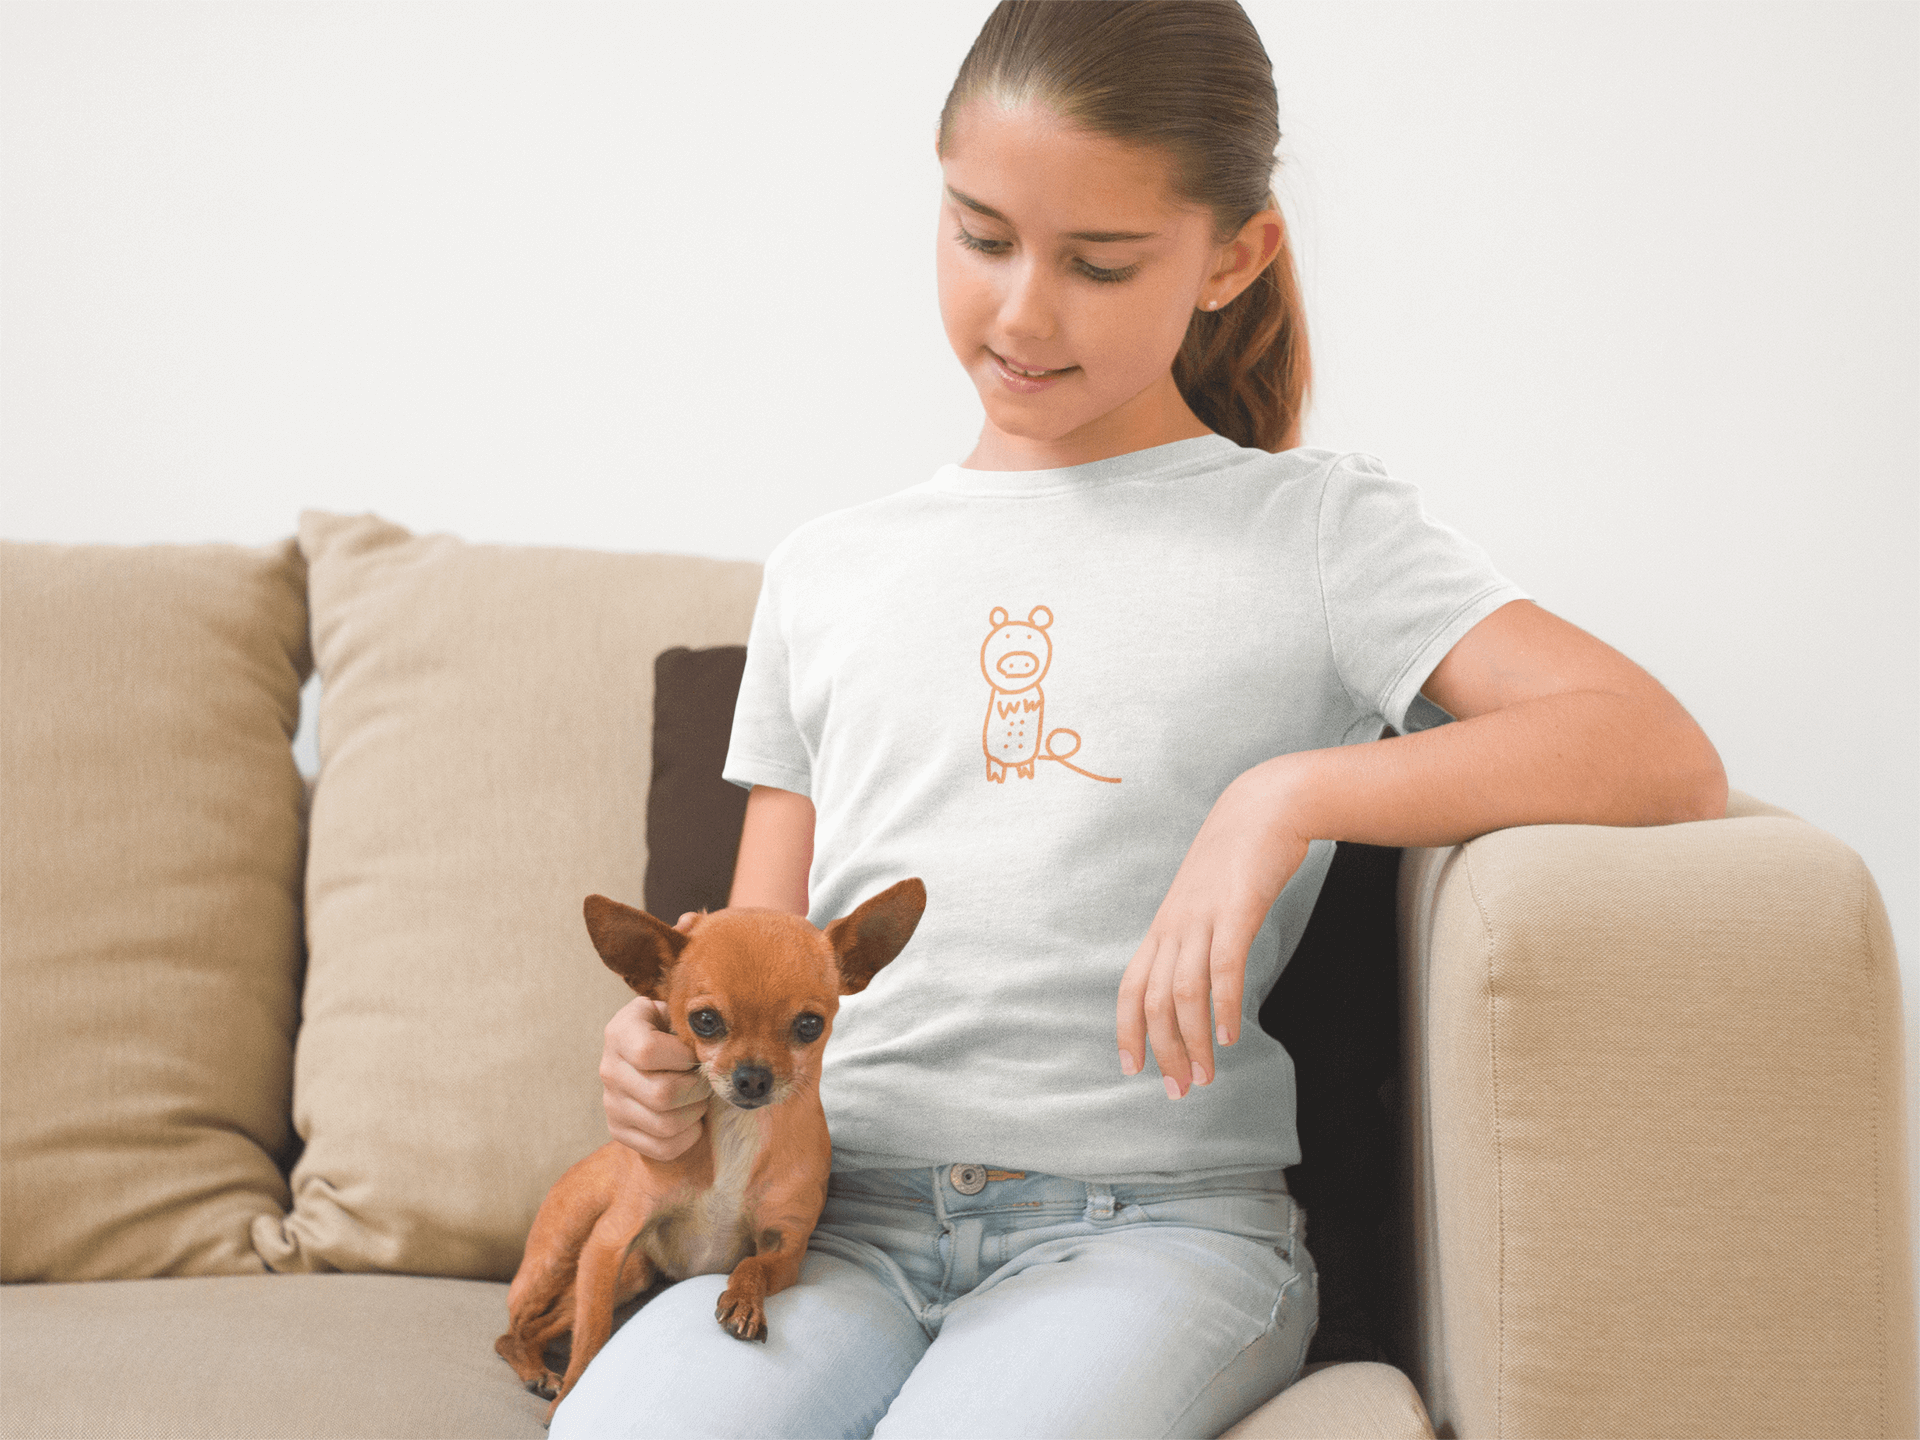 t-shirt-mockup-of-a-young-girl-with-her-dog-at-home-a7940 (2) (1).png